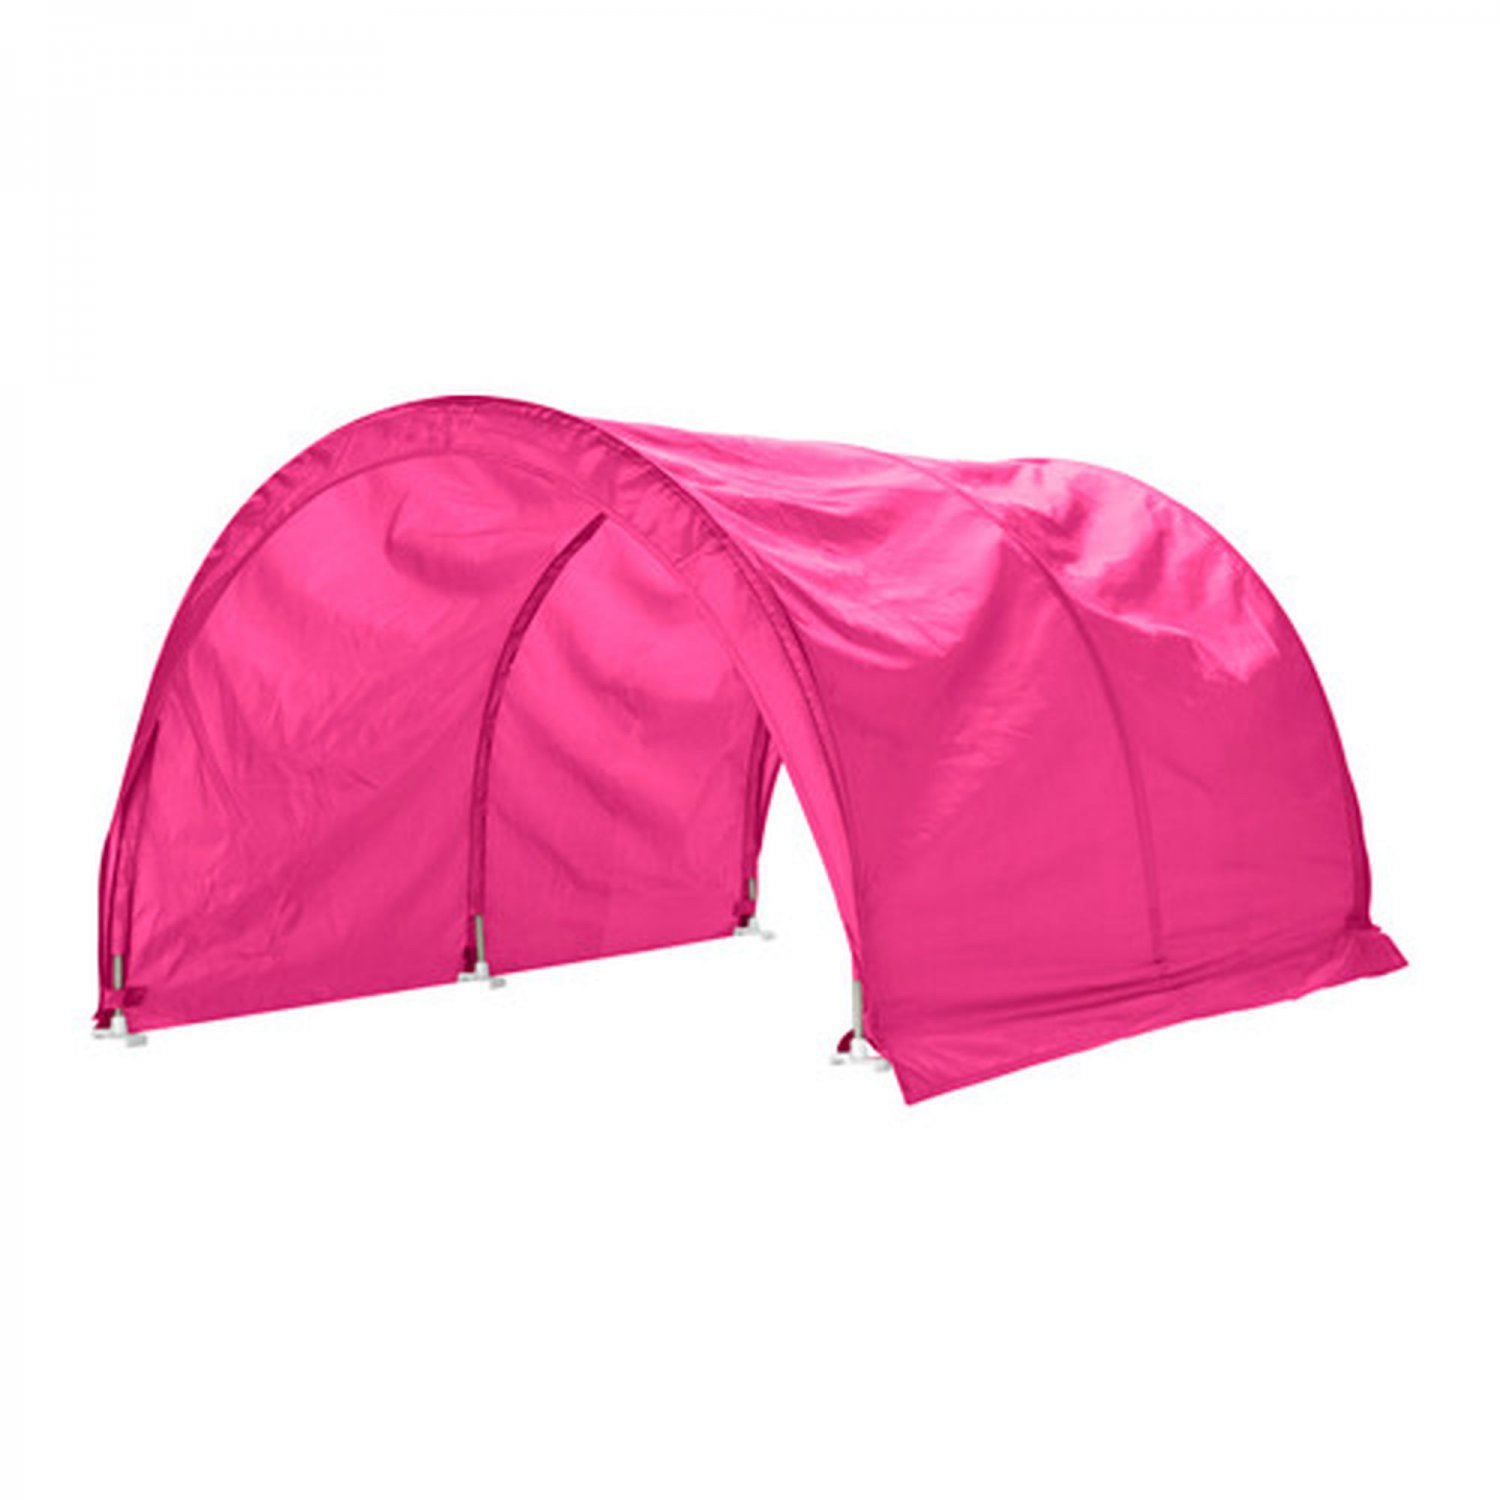 Ikea Child S Kura Pink Bed Tent Canopy Toy Xmas Girl Boy